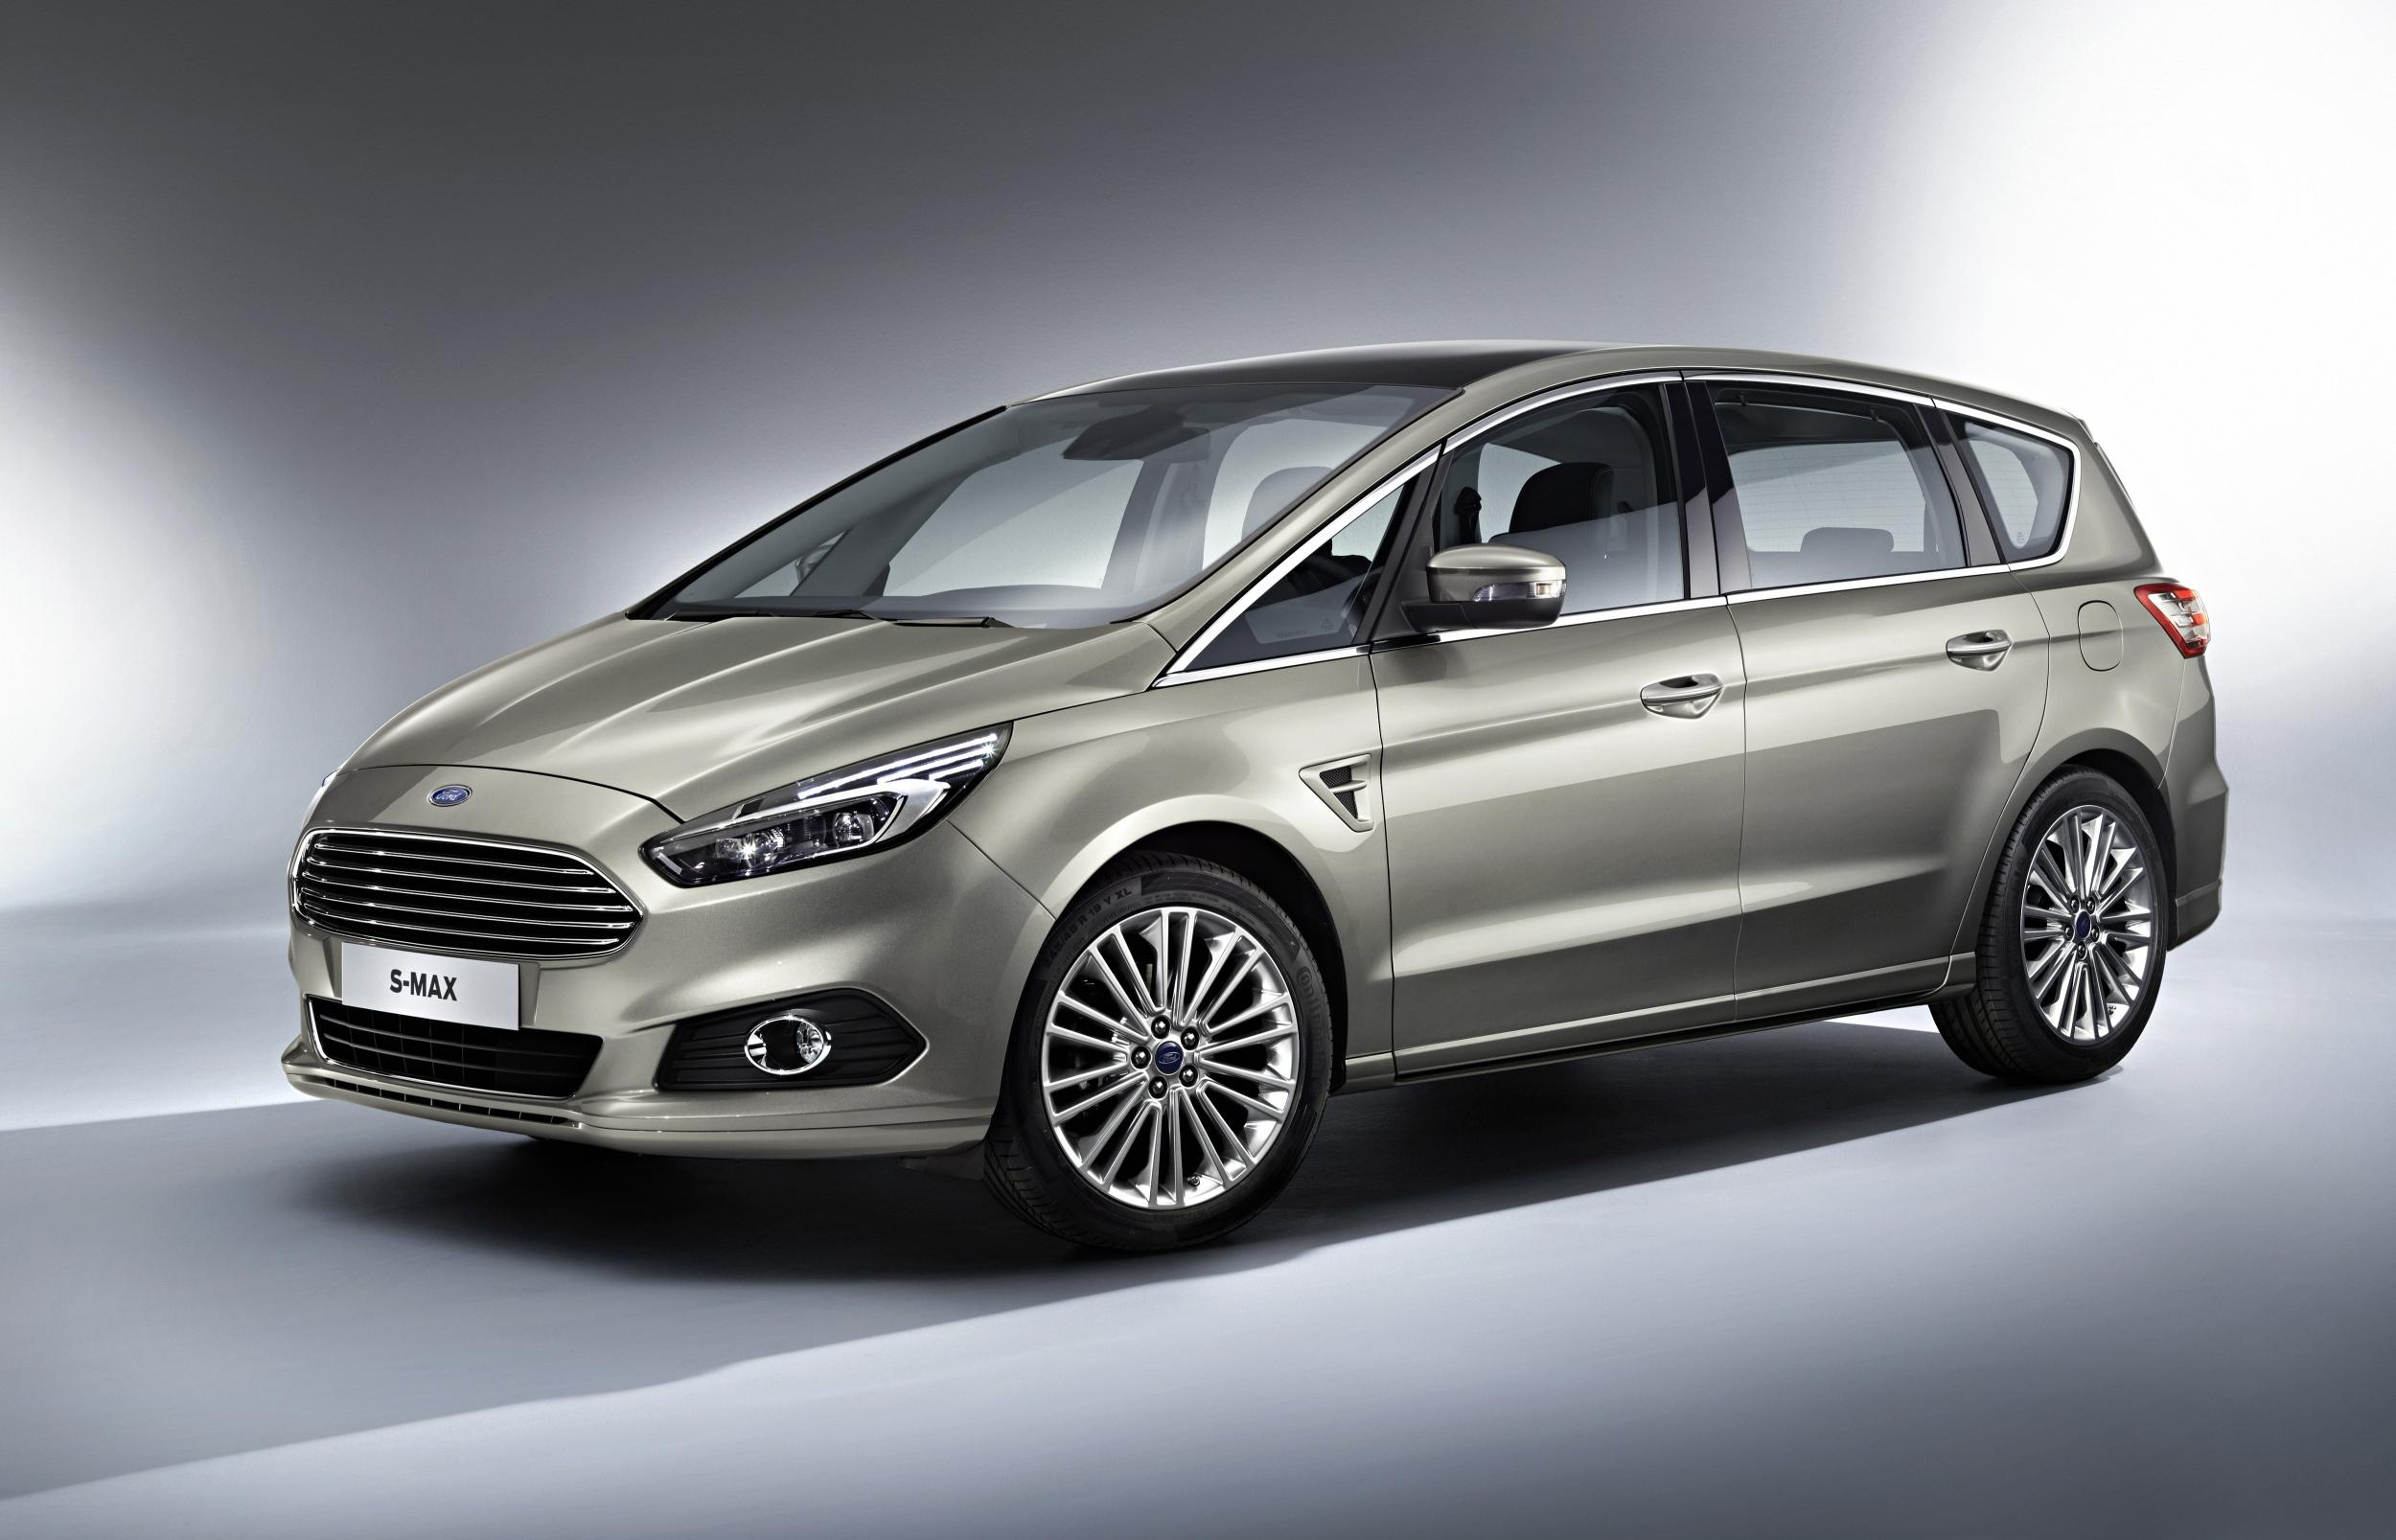 2015 ford s max detailed ahead of paris motor show debut. Black Bedroom Furniture Sets. Home Design Ideas